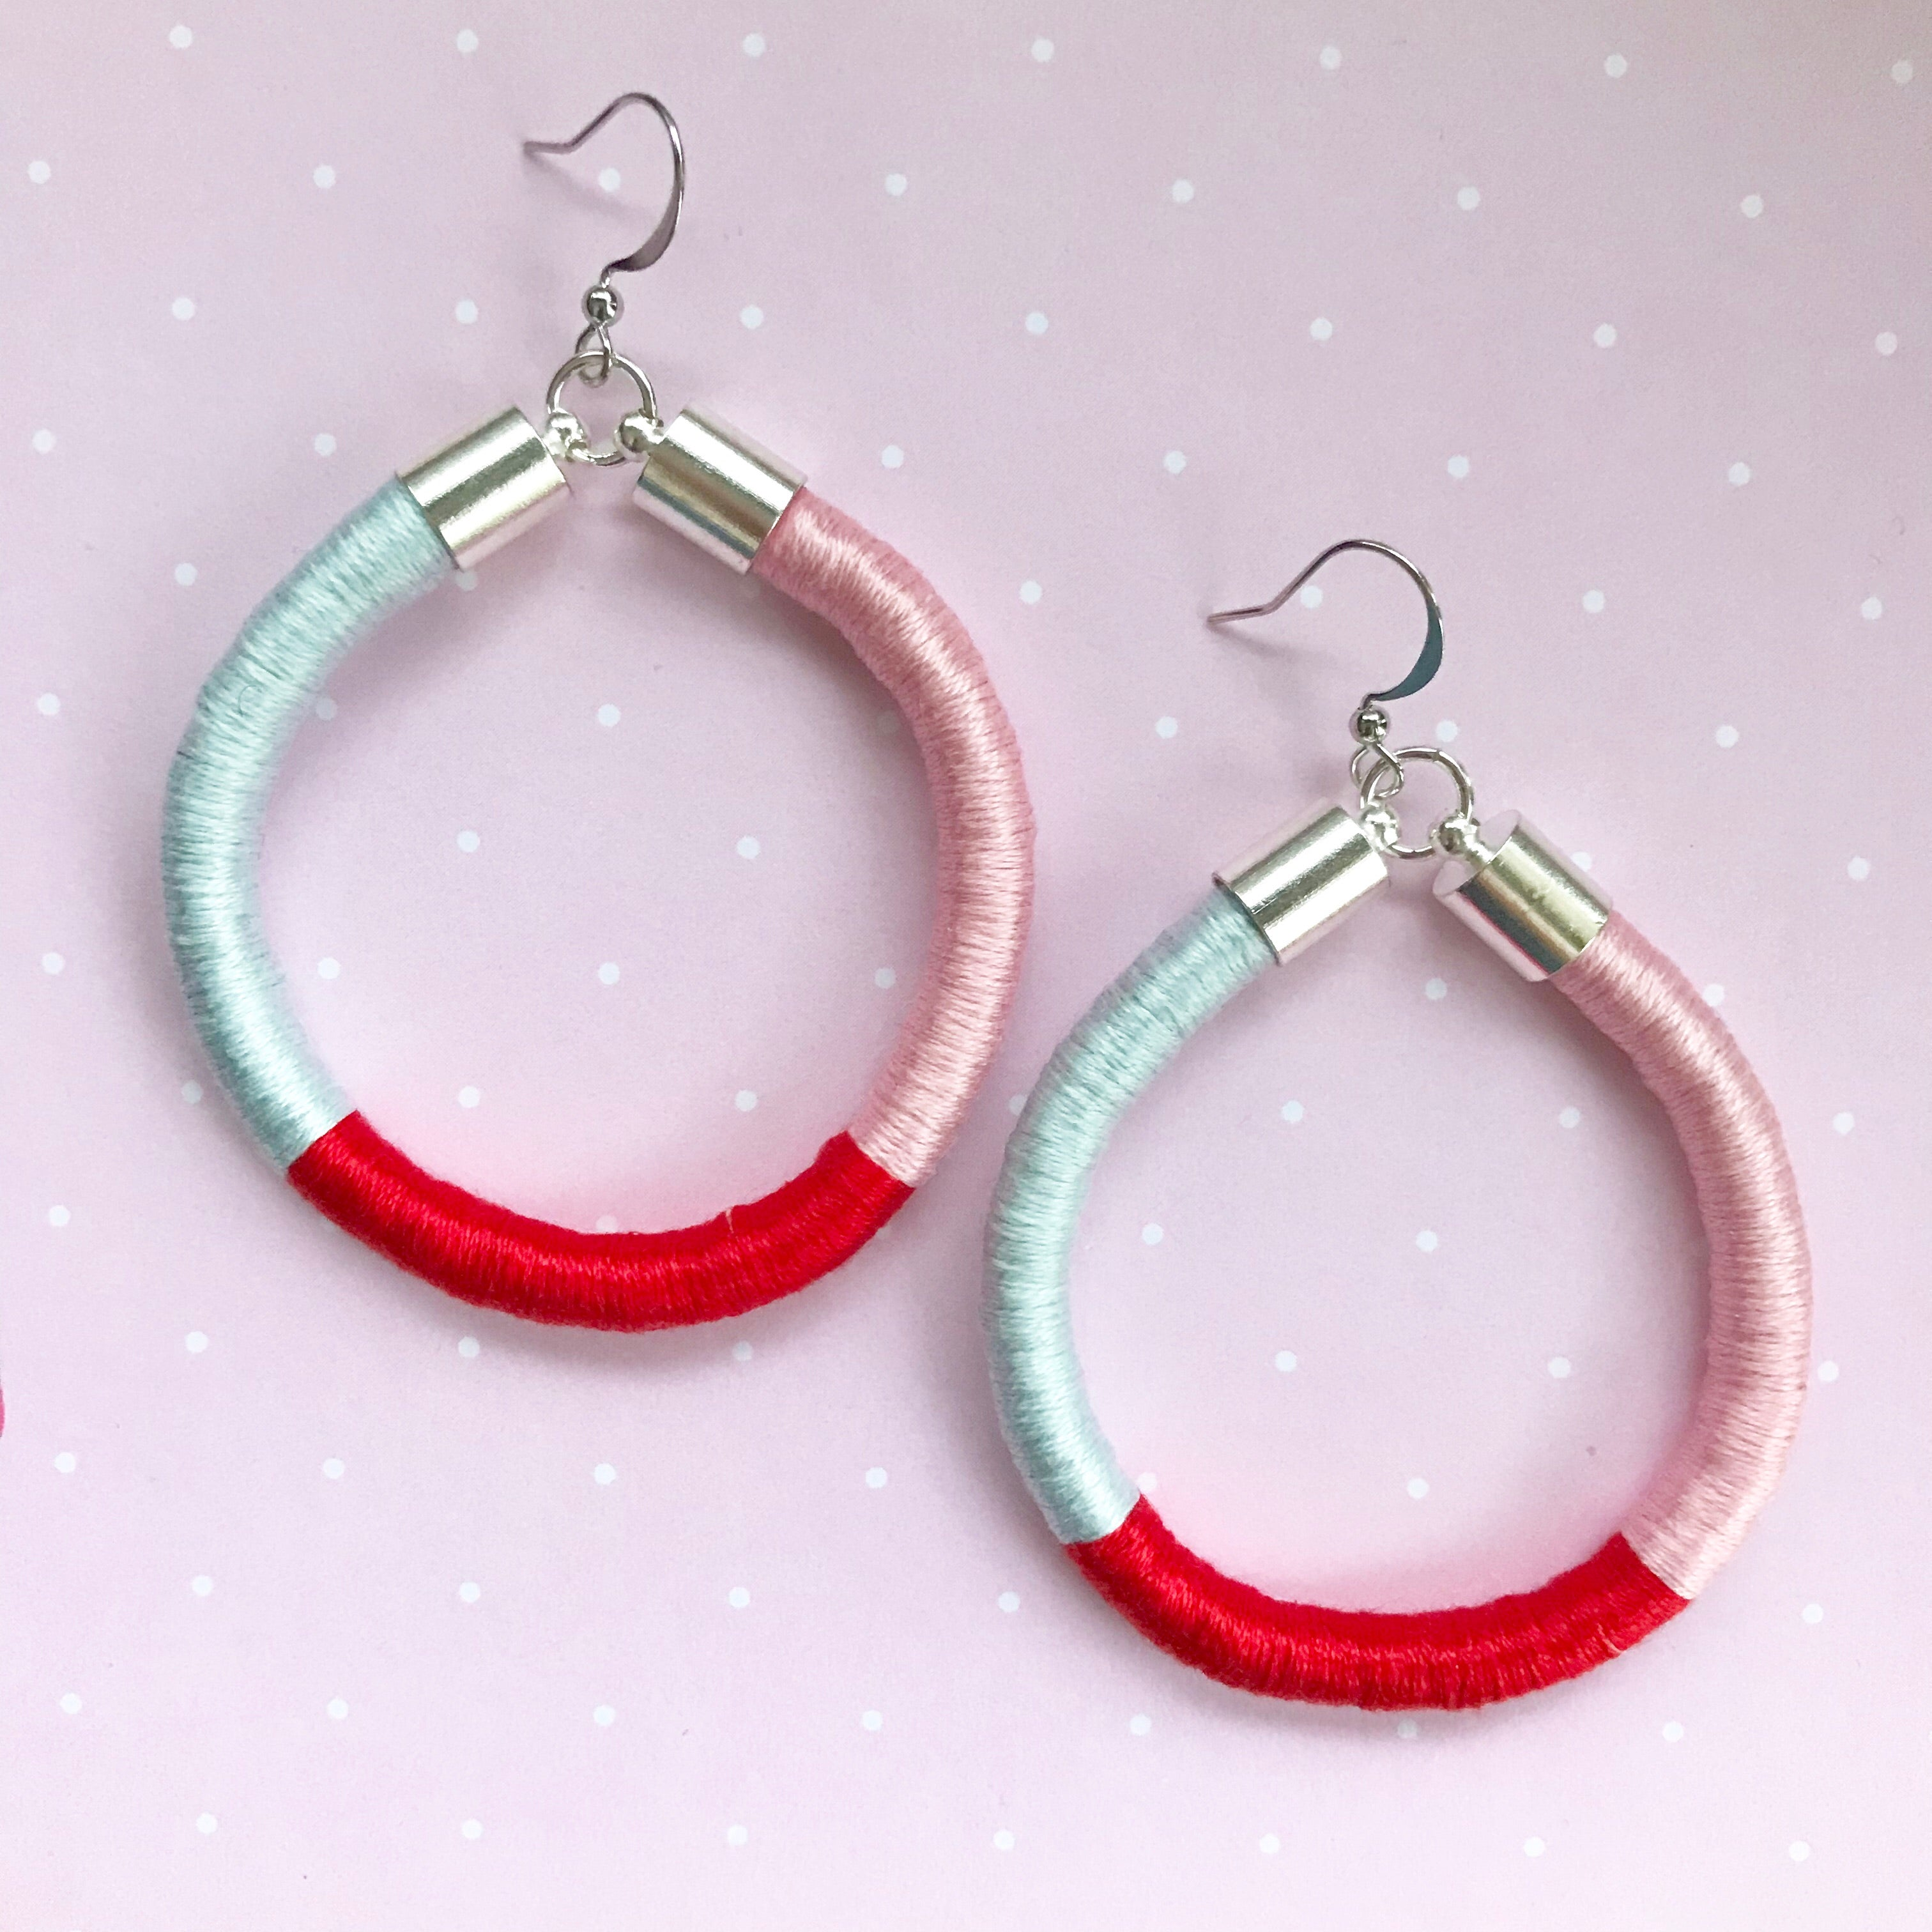 Disco Diva - Serenity Blue/Vivid Red/Baby Pink Colour Block Hoop Earrings